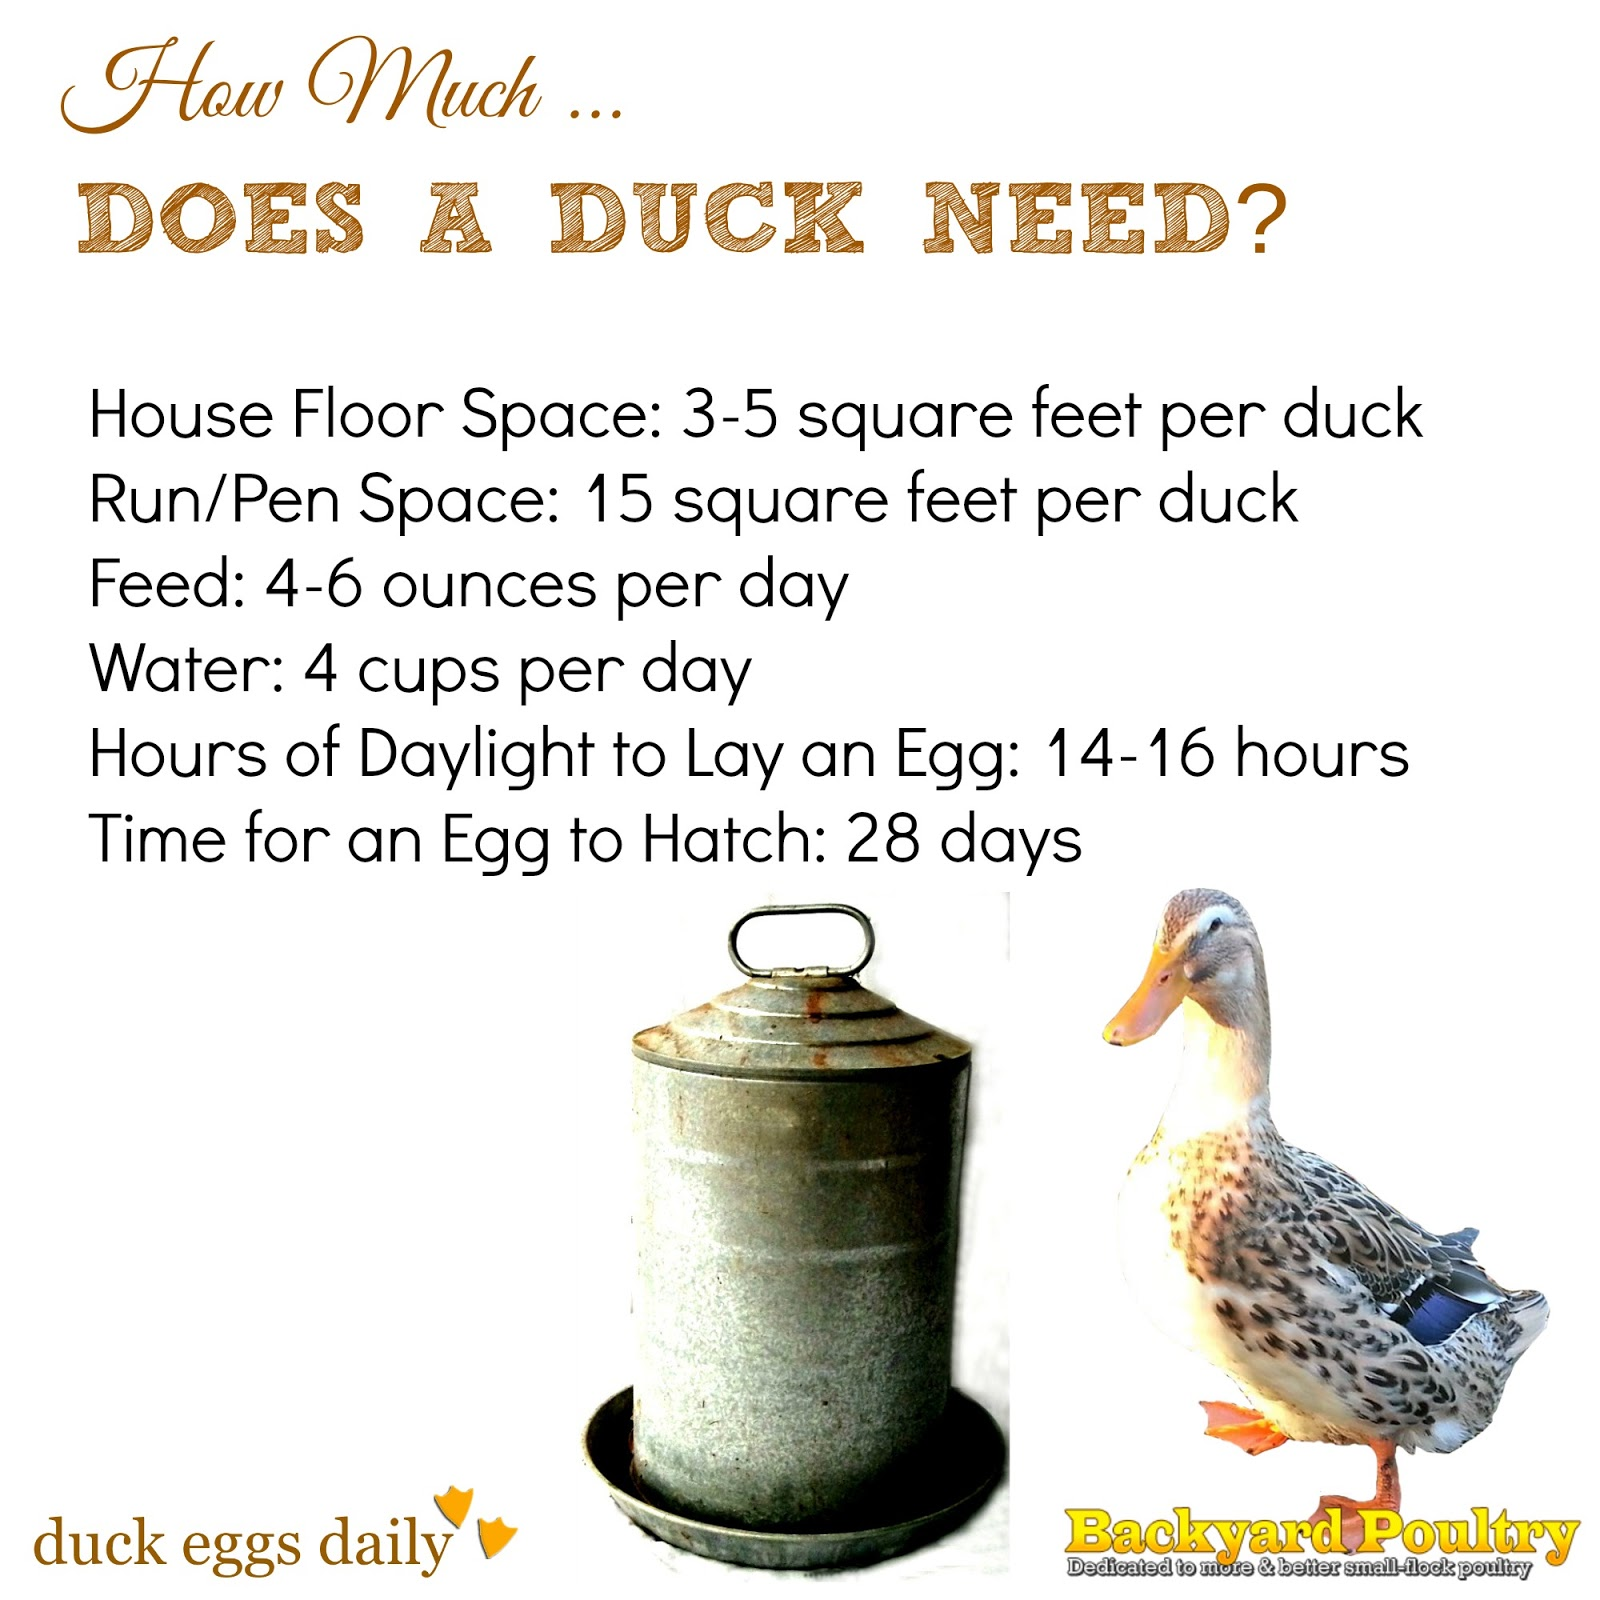 How Much Space... Feed... Water... Light Does A Duck Need